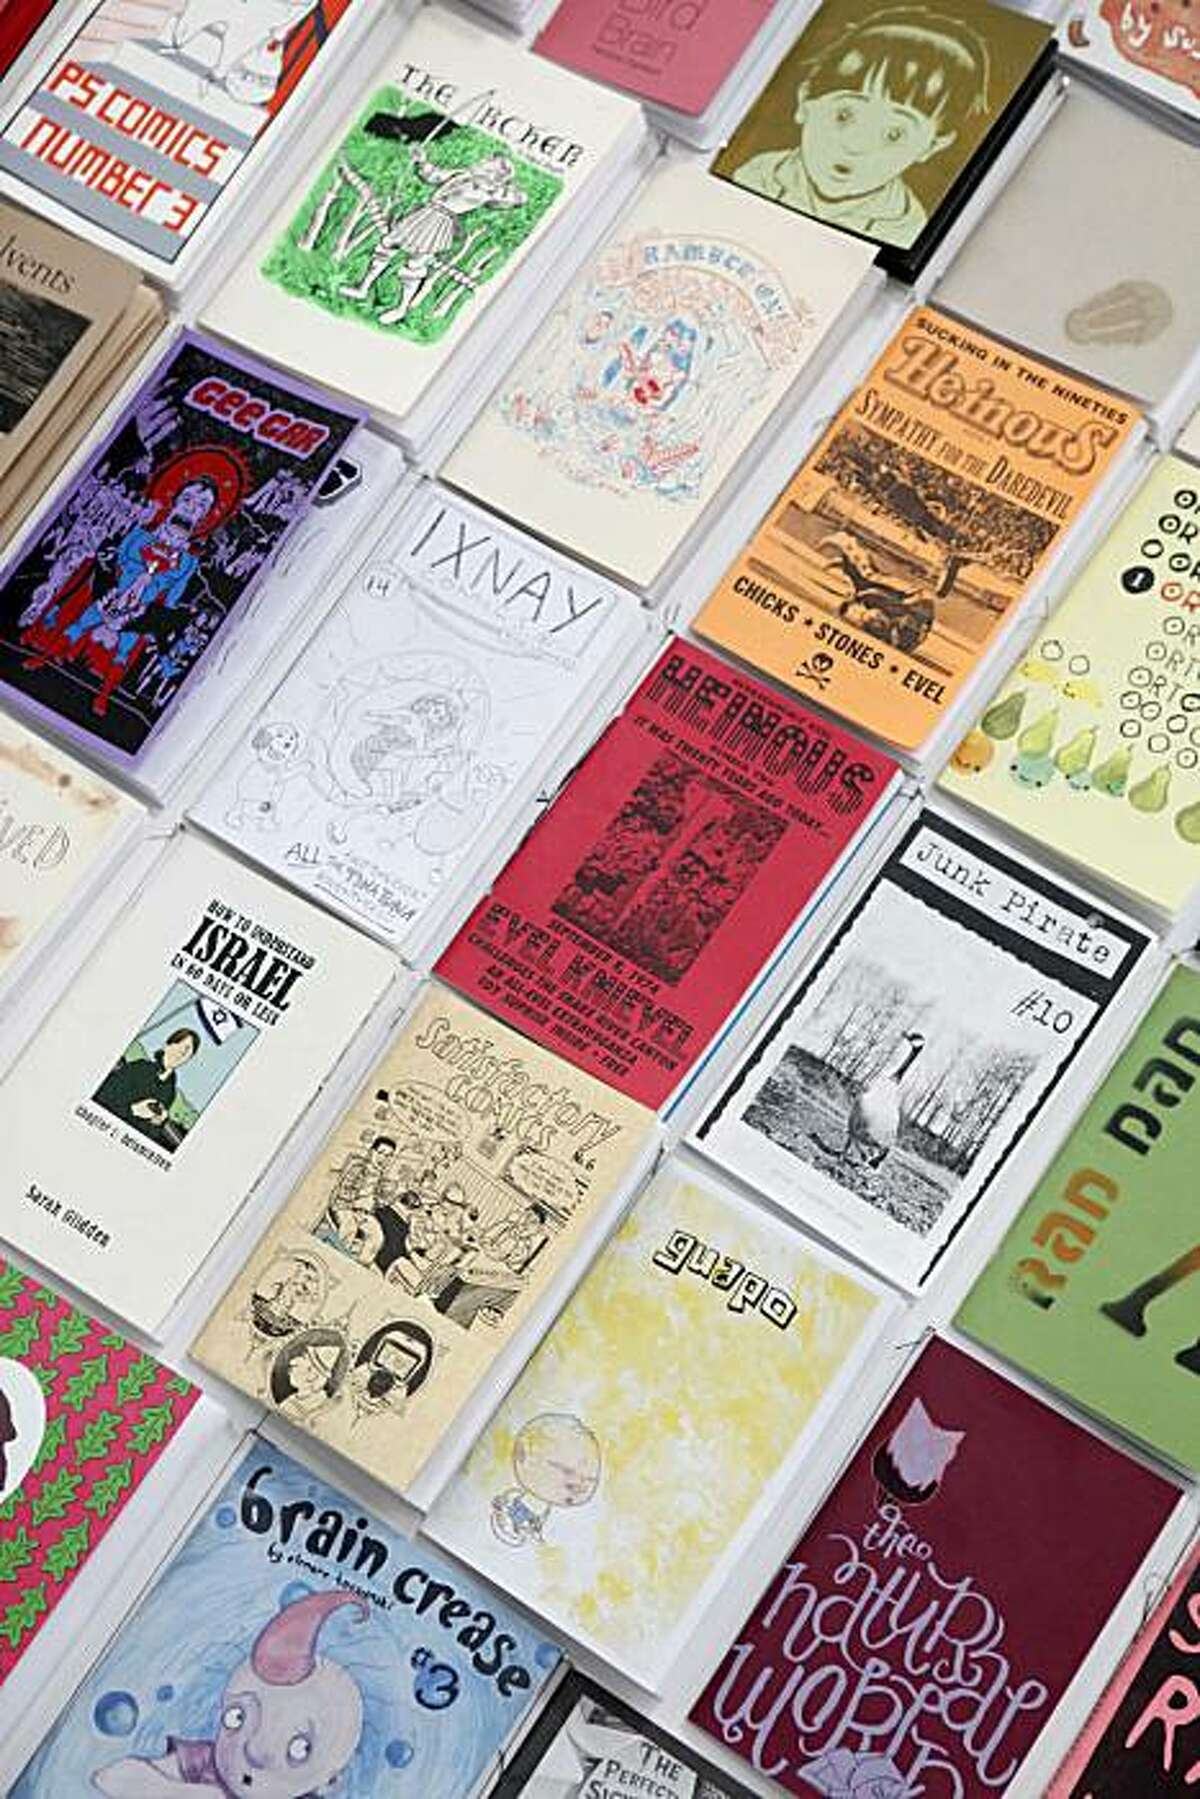 Photocopied zines hang on the wall at Levi's Workshop, an eight-week long multi-use print shop and events venue on Tuesday June 29, 2010 in San Francisco, Calif.